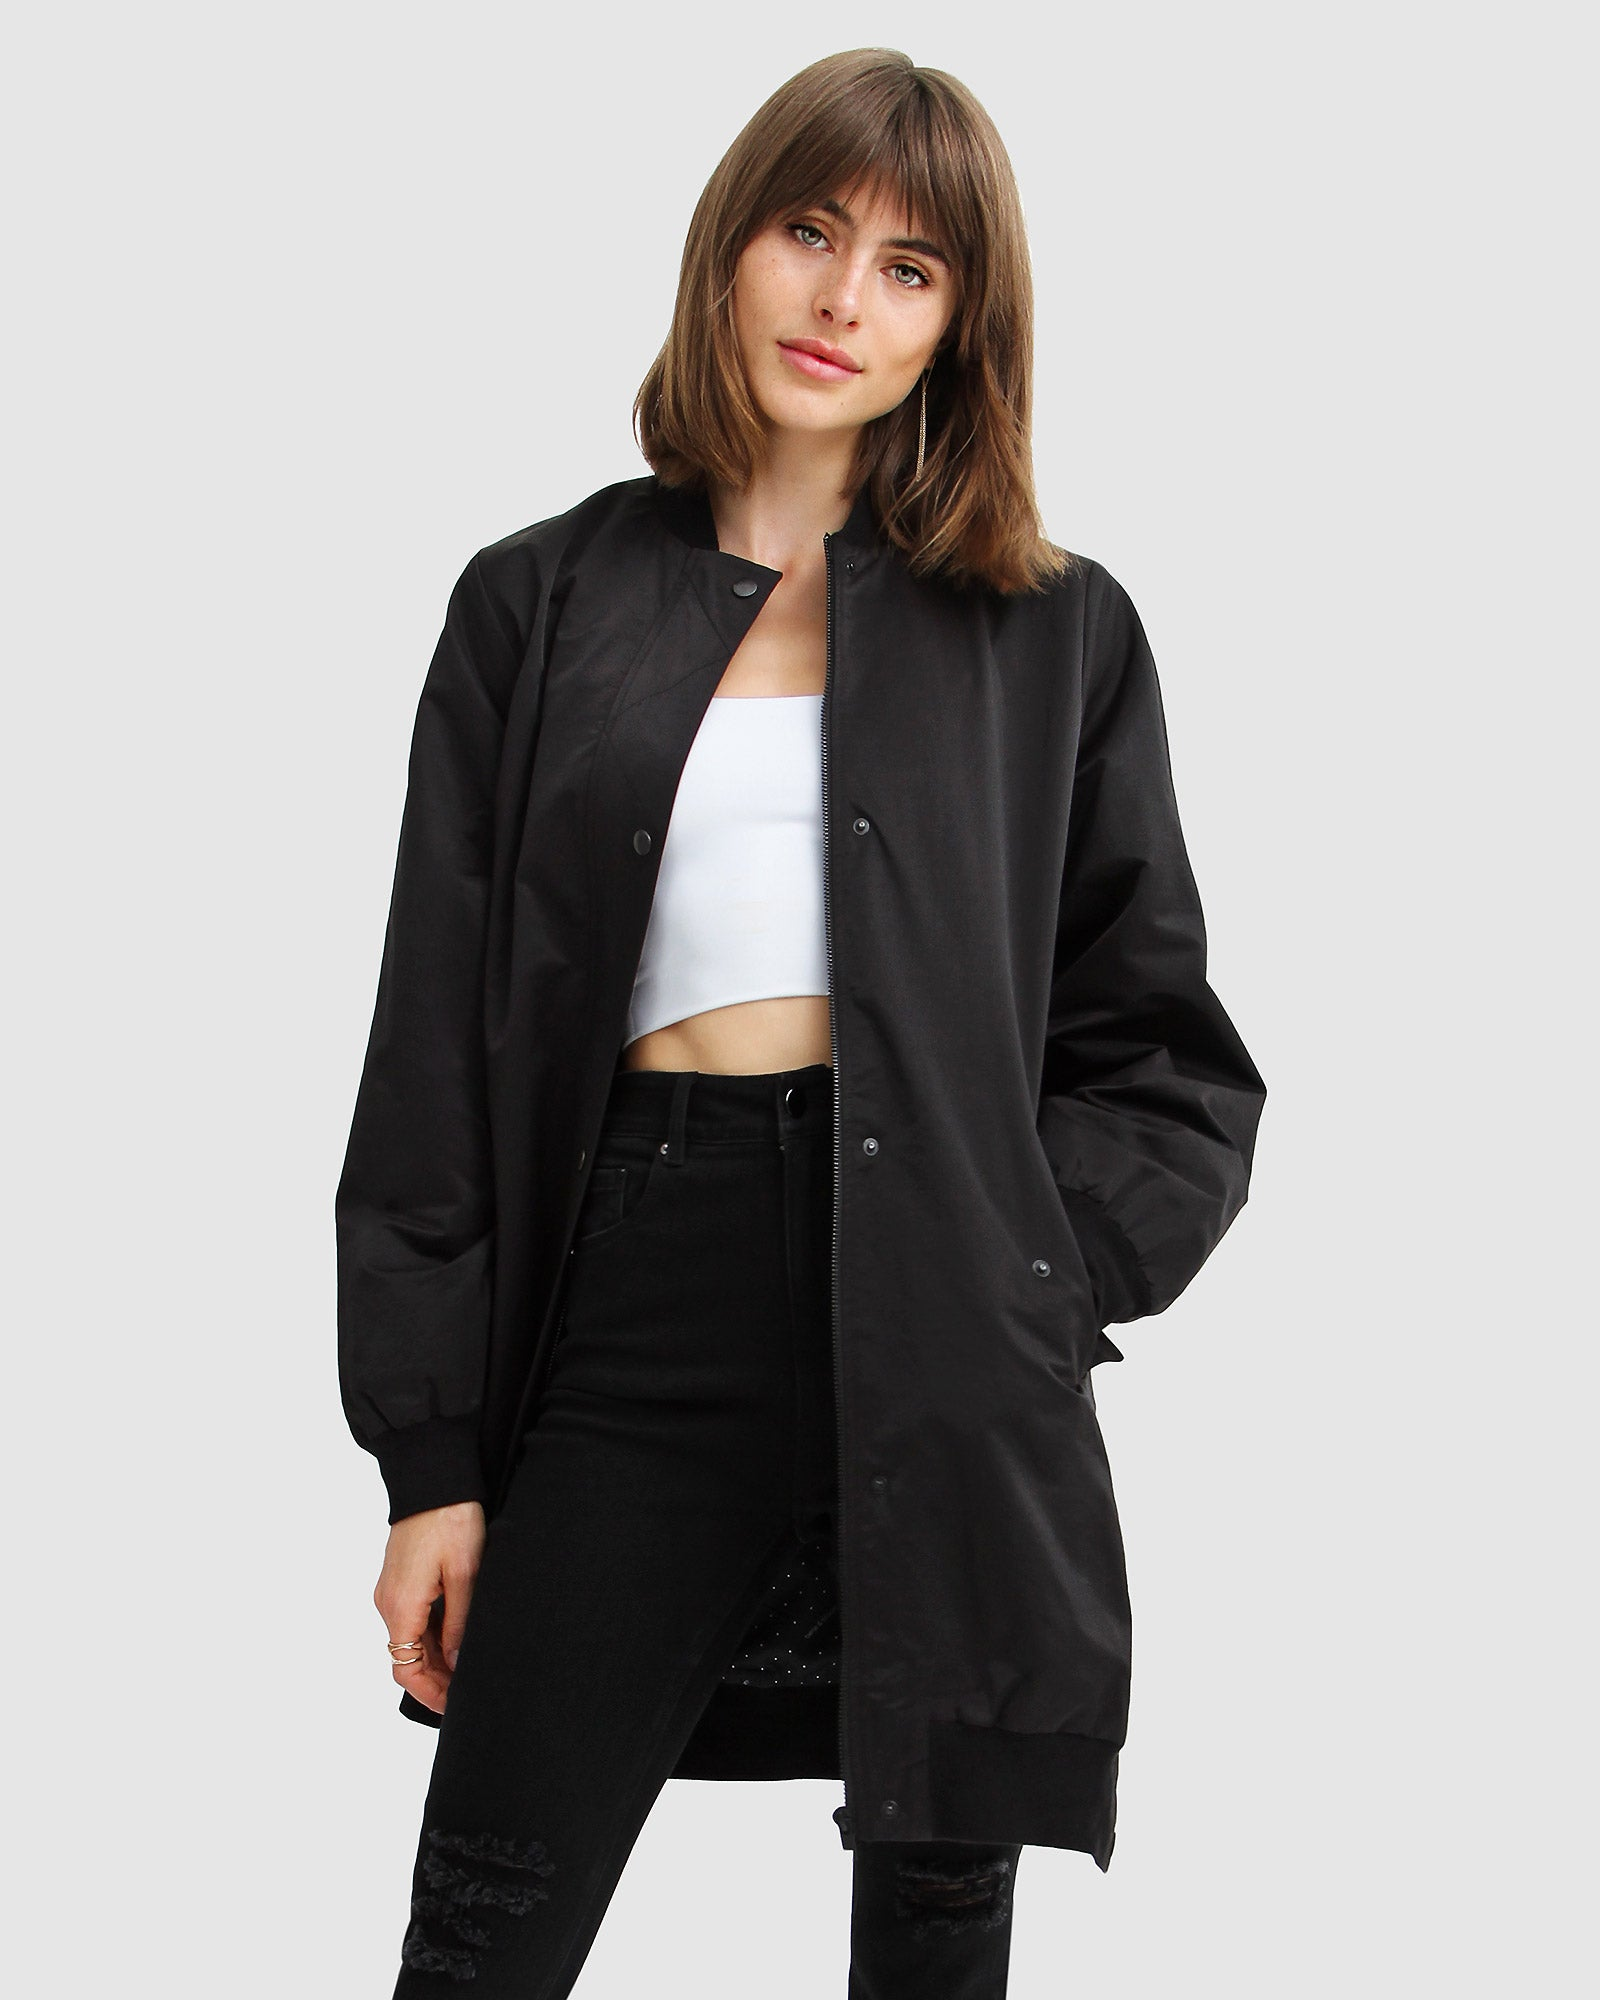 Chasing You Long Bomber Jacket - Black